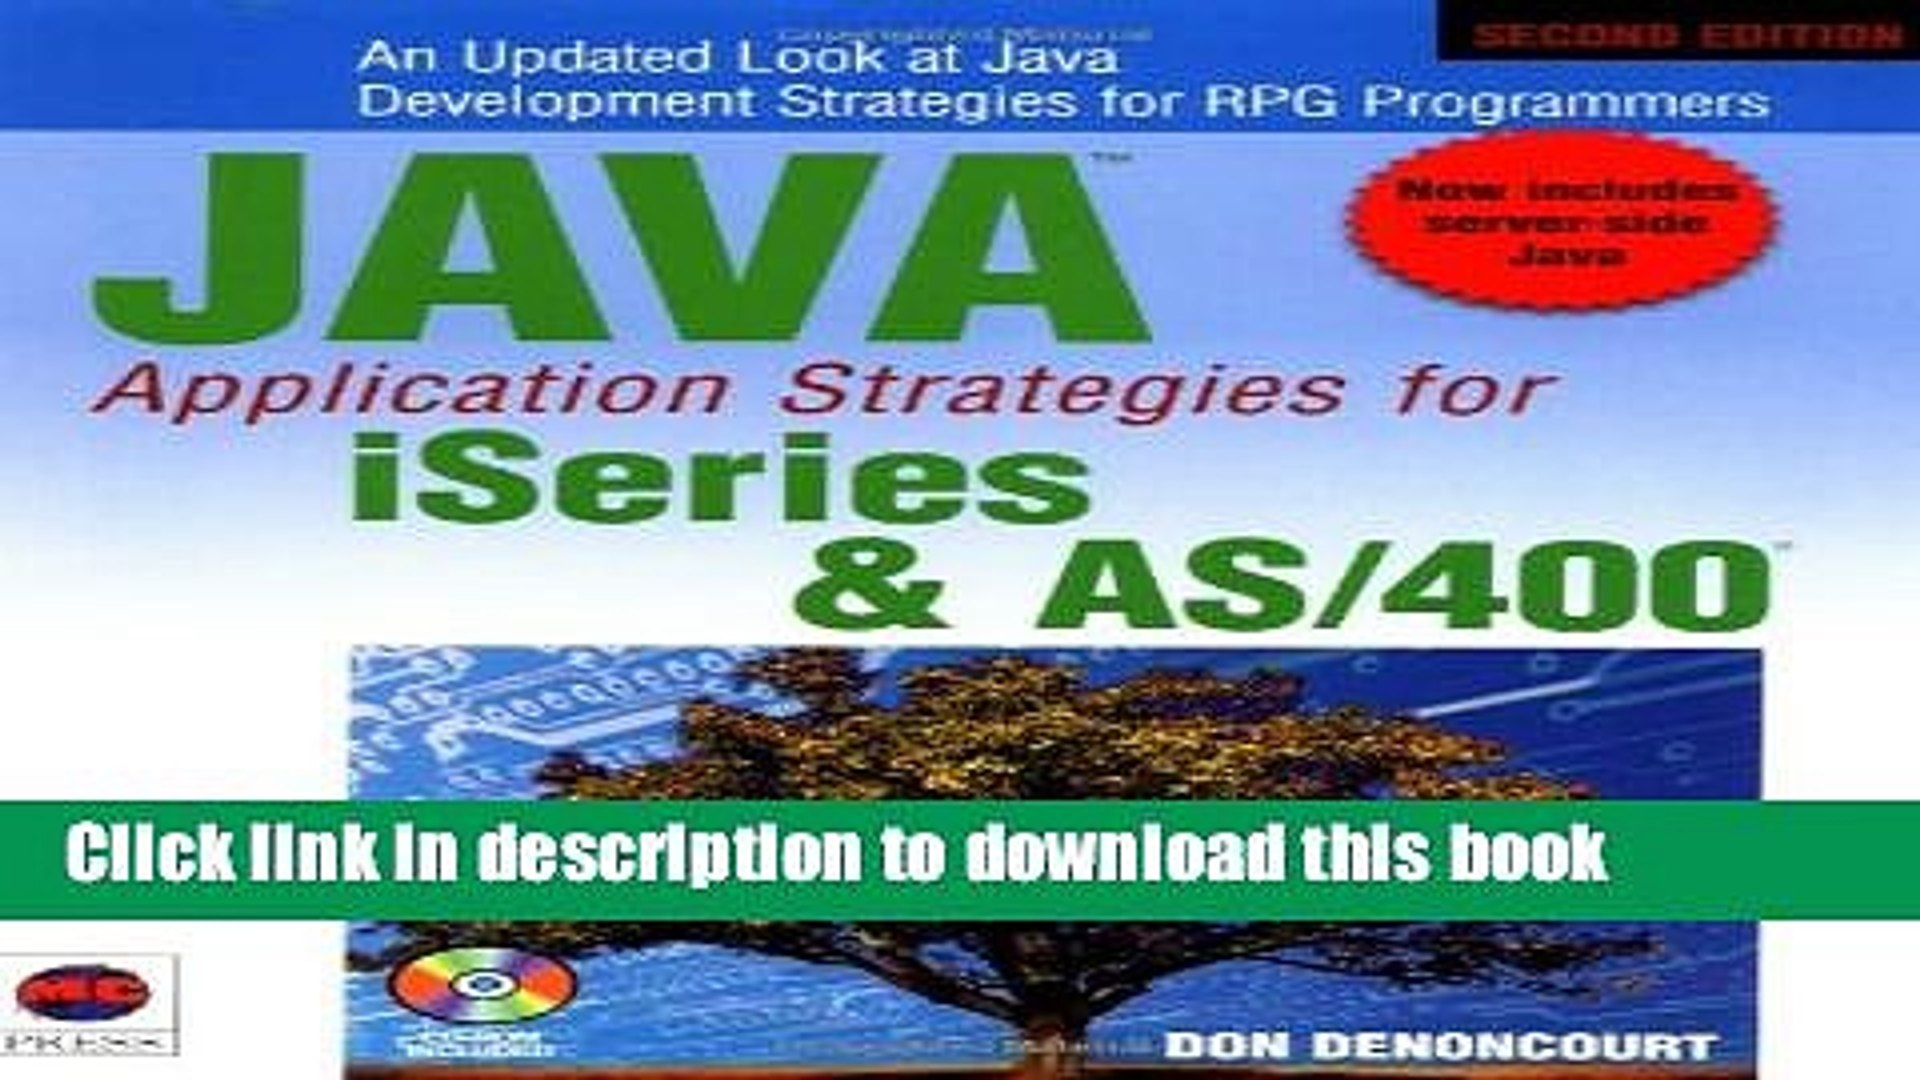 [Download] Java Application Strategies for iSeries and AS/400 Free E-Book